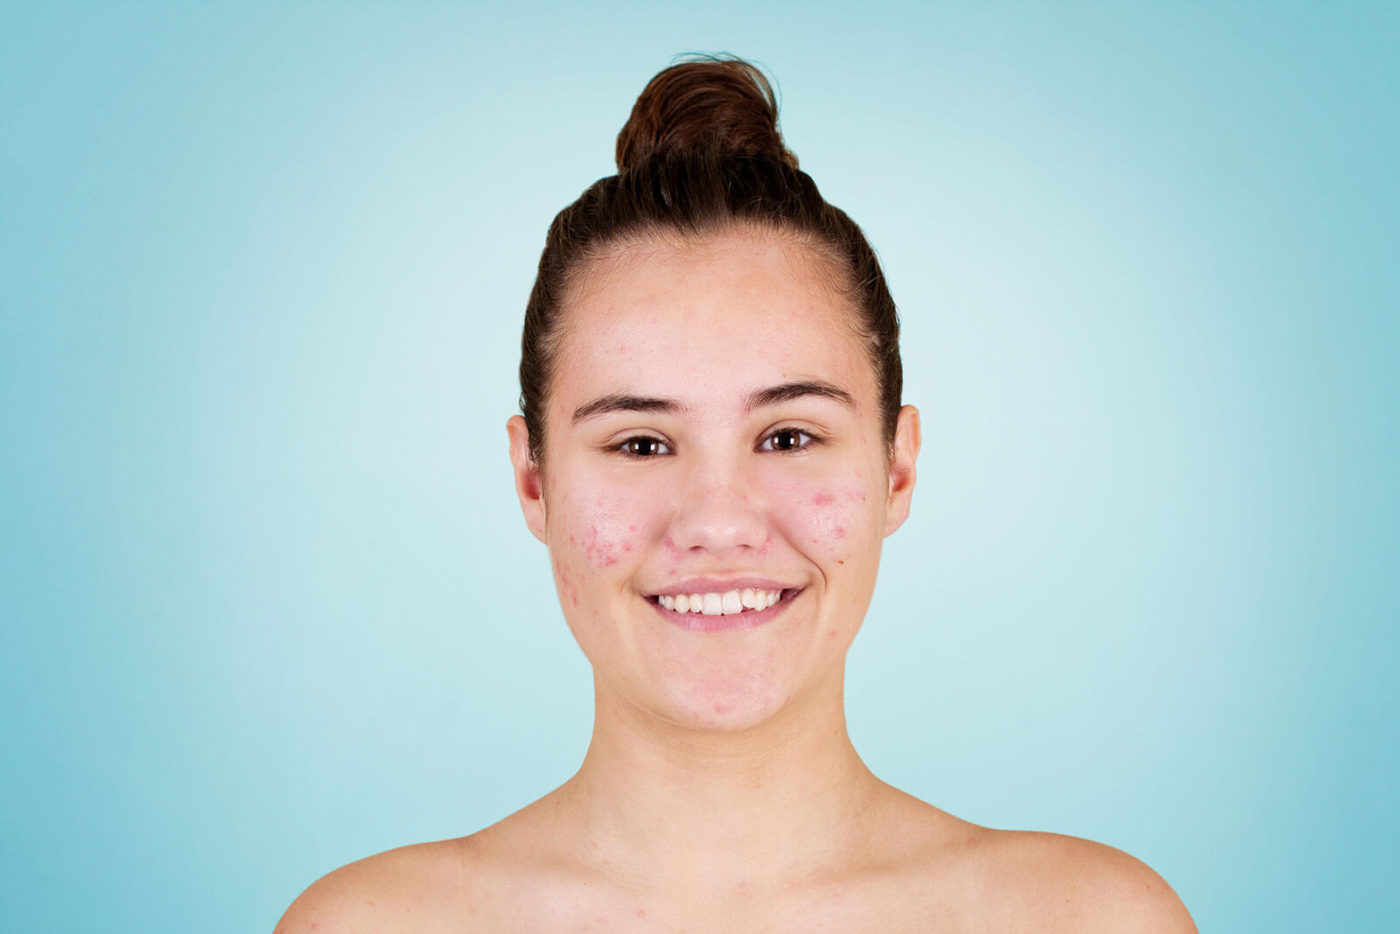 Woman with brown hair and pimples on her cheeks